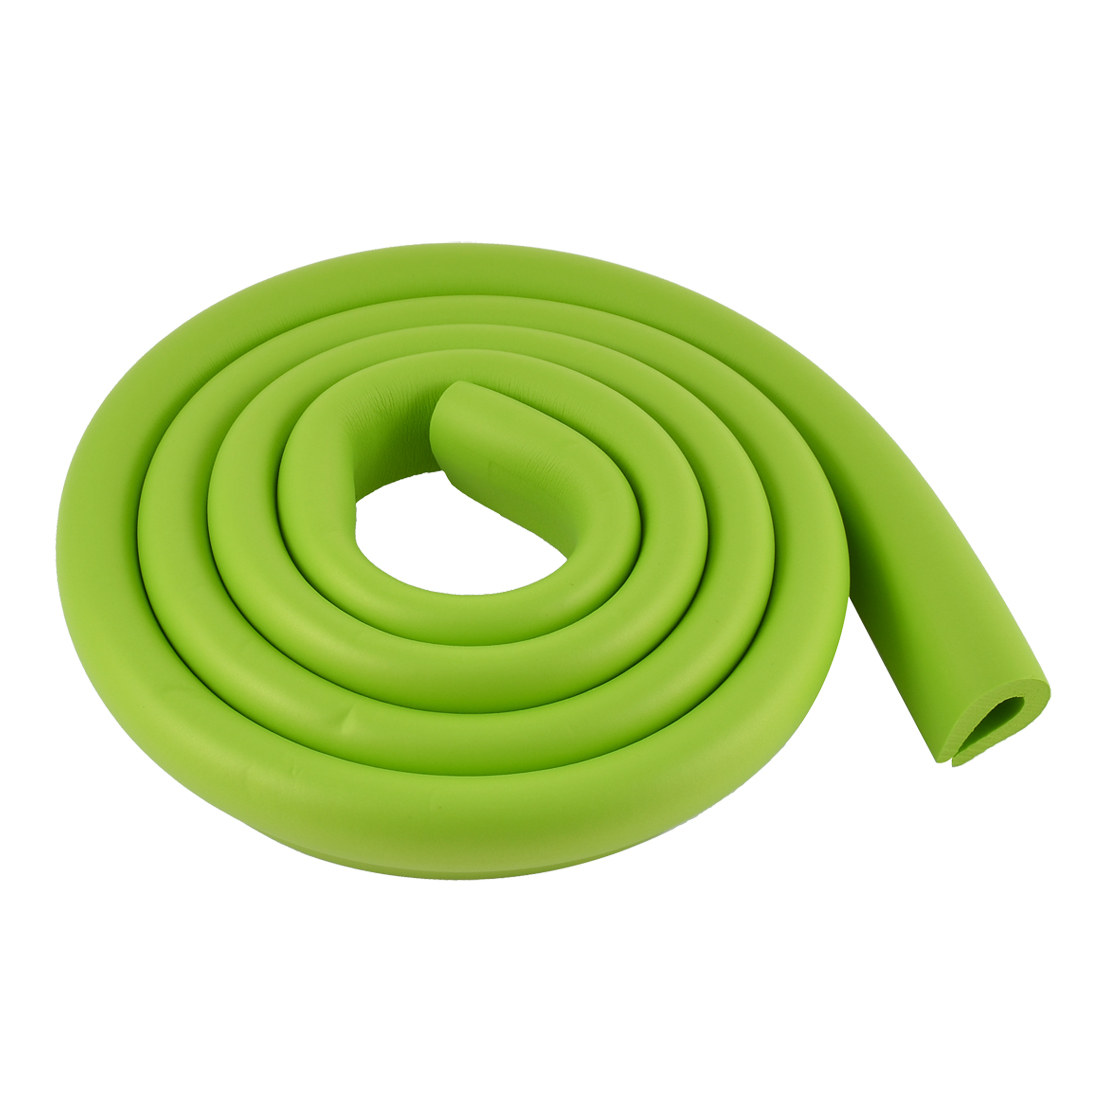 Furniture Corner Edge Soft Safety Protection Cushion Guard 35mm x 8mm Green